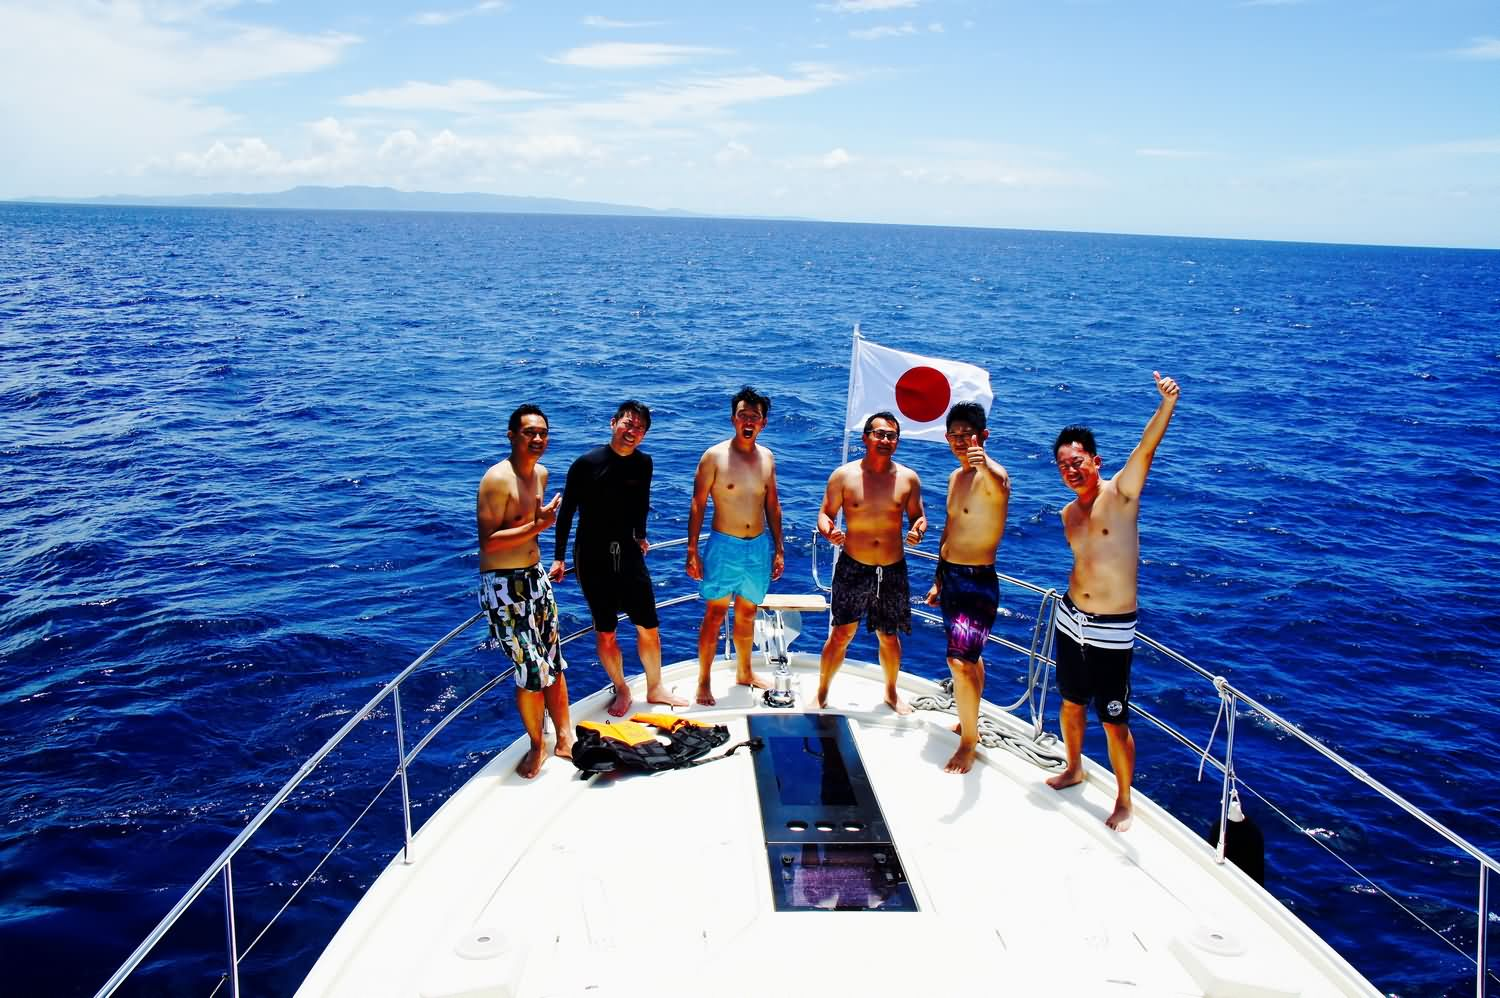 monte carlo 5 on a journey from taiwan to okinawa  japan